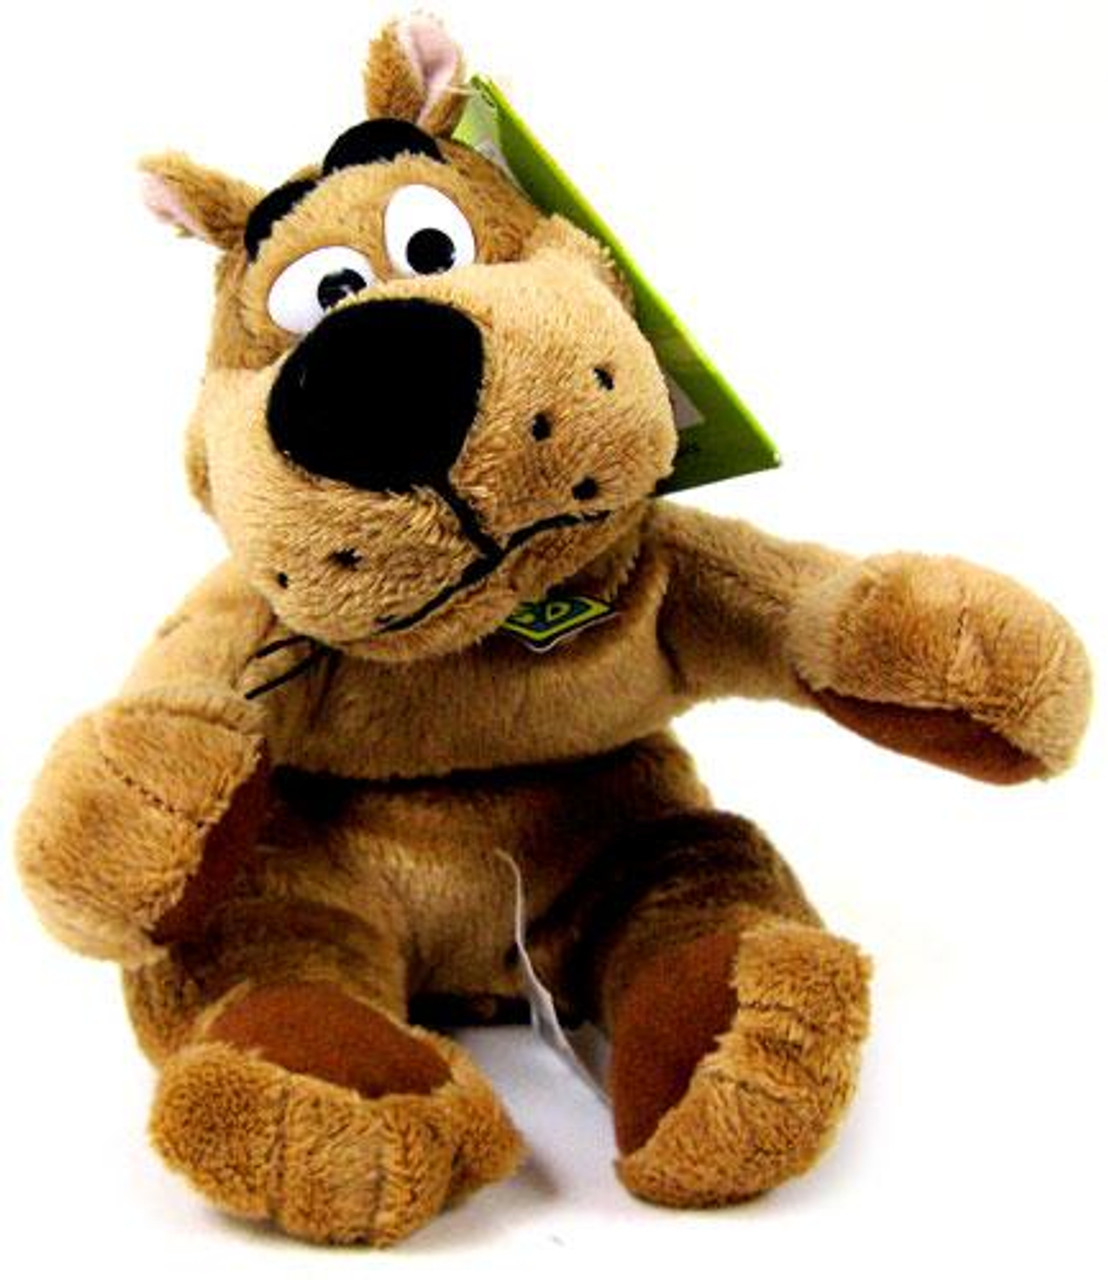 Scooby Doo Plush Figure